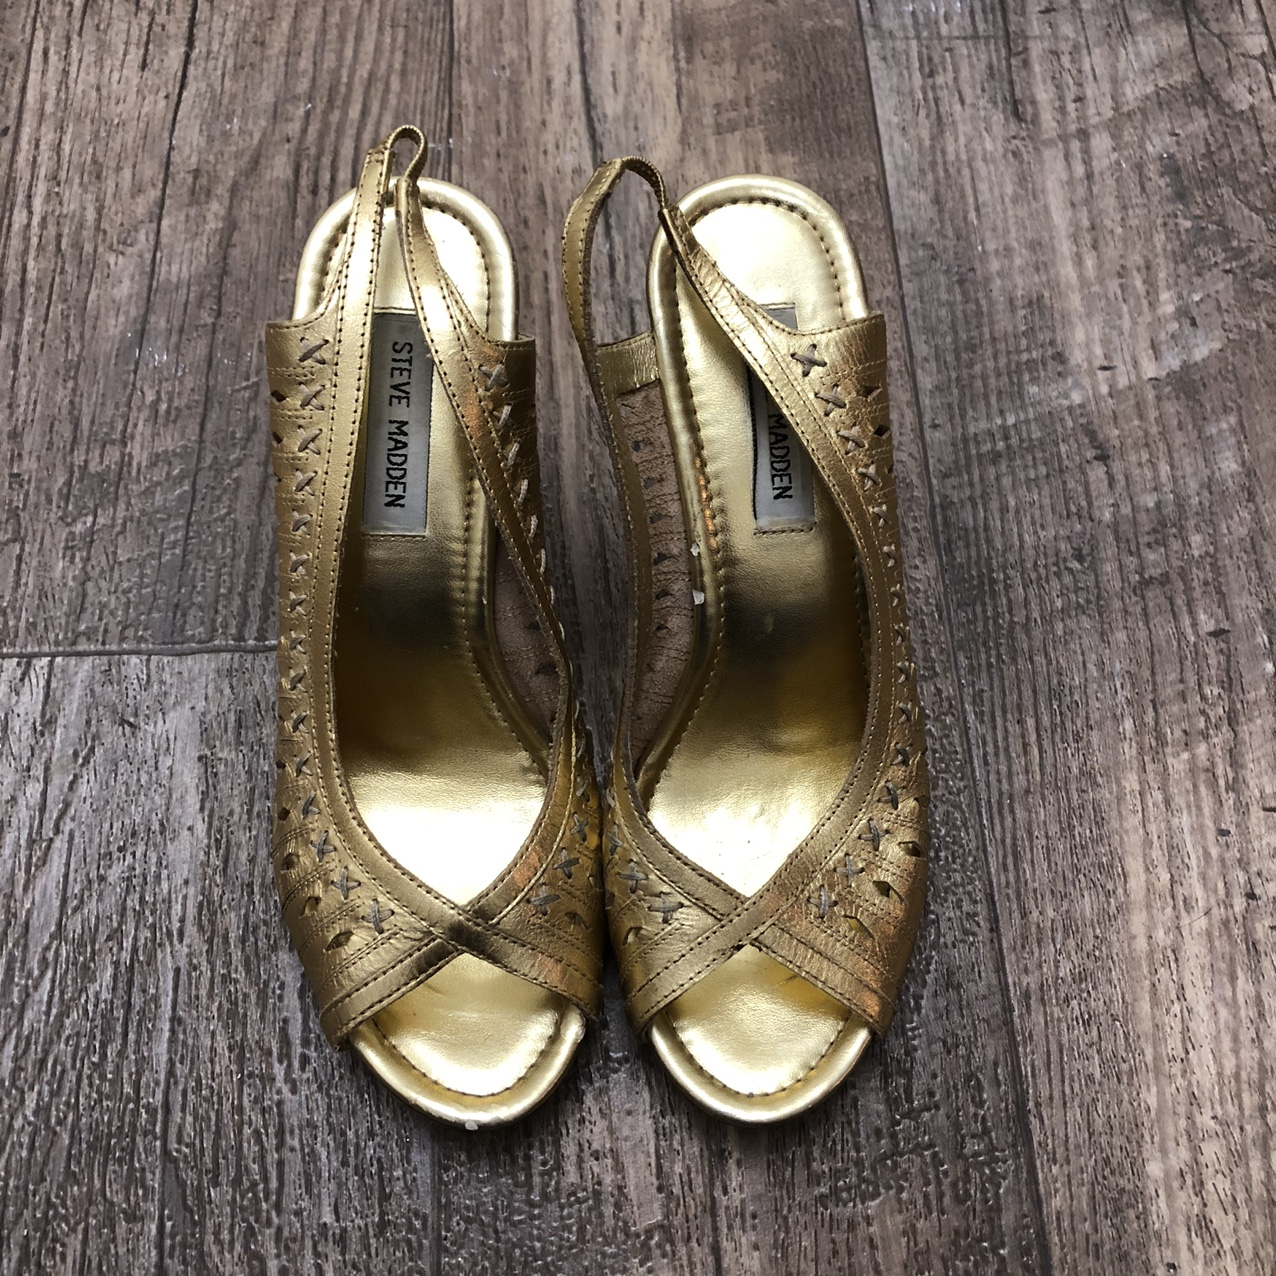 Product Image 1 - Steve Madden gold open-toed 4